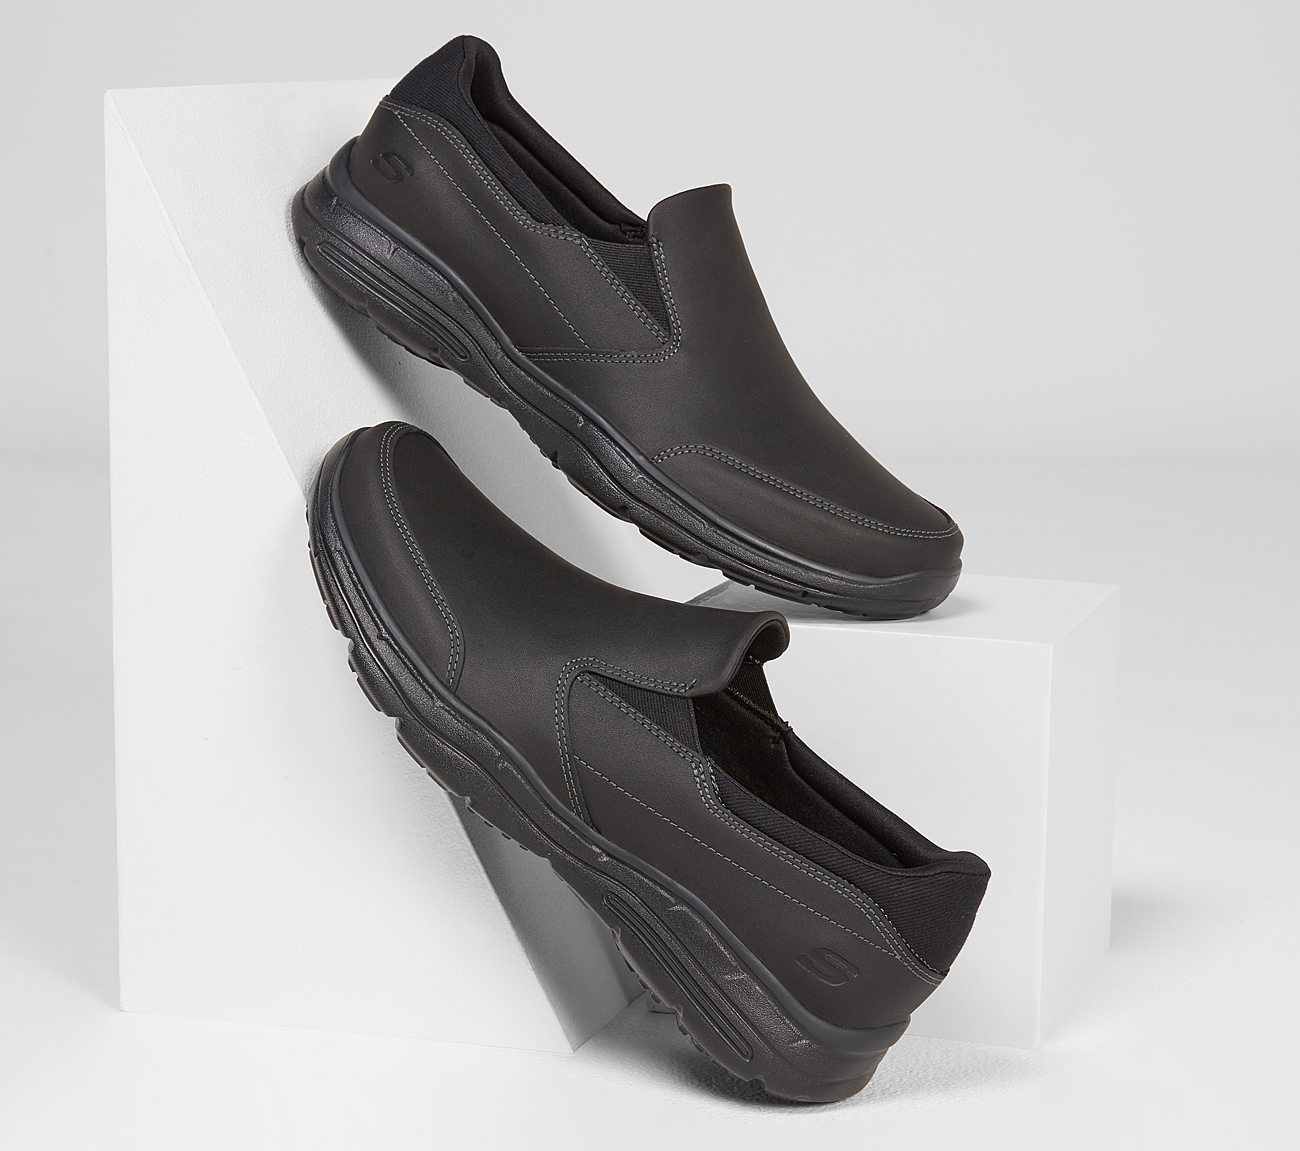 6a23d84d3cc2 Buy SKECHERS Relaxed Fit  Glides - Calculous USA Casuals Shoes only ...